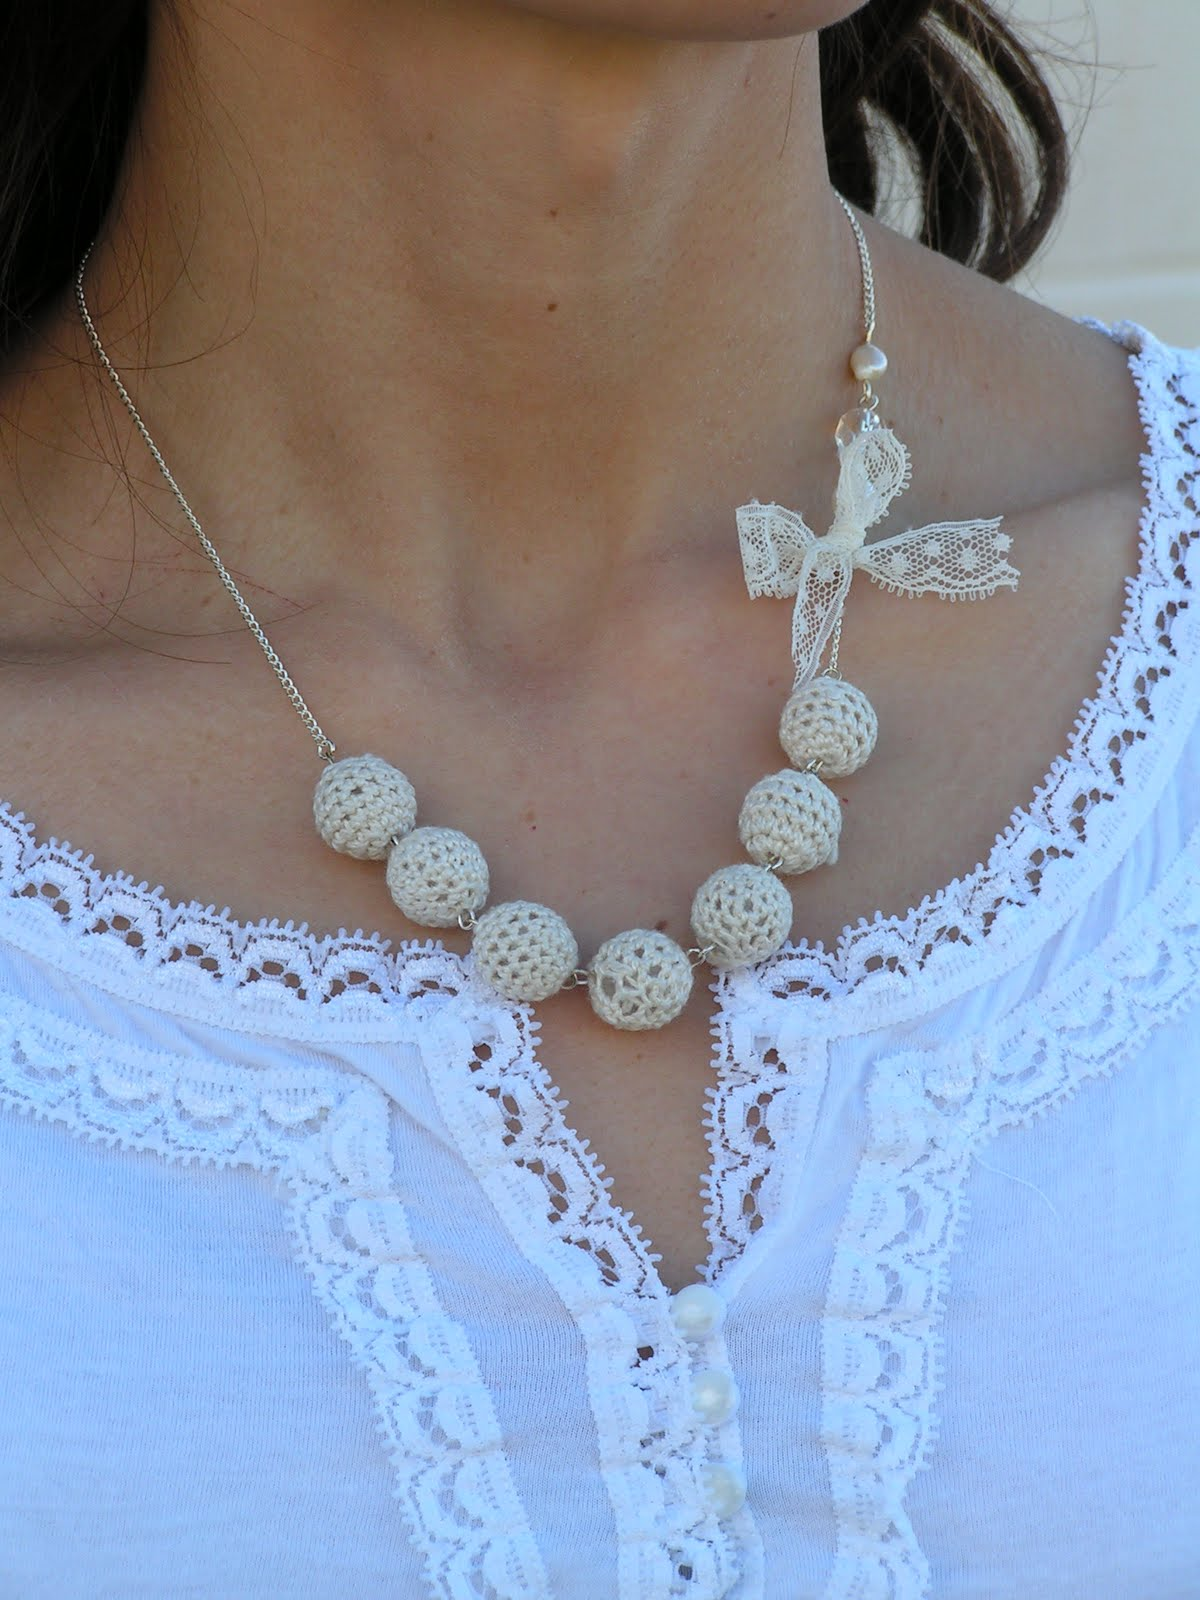 Crocheting Beads : Crochet Beads Necklace